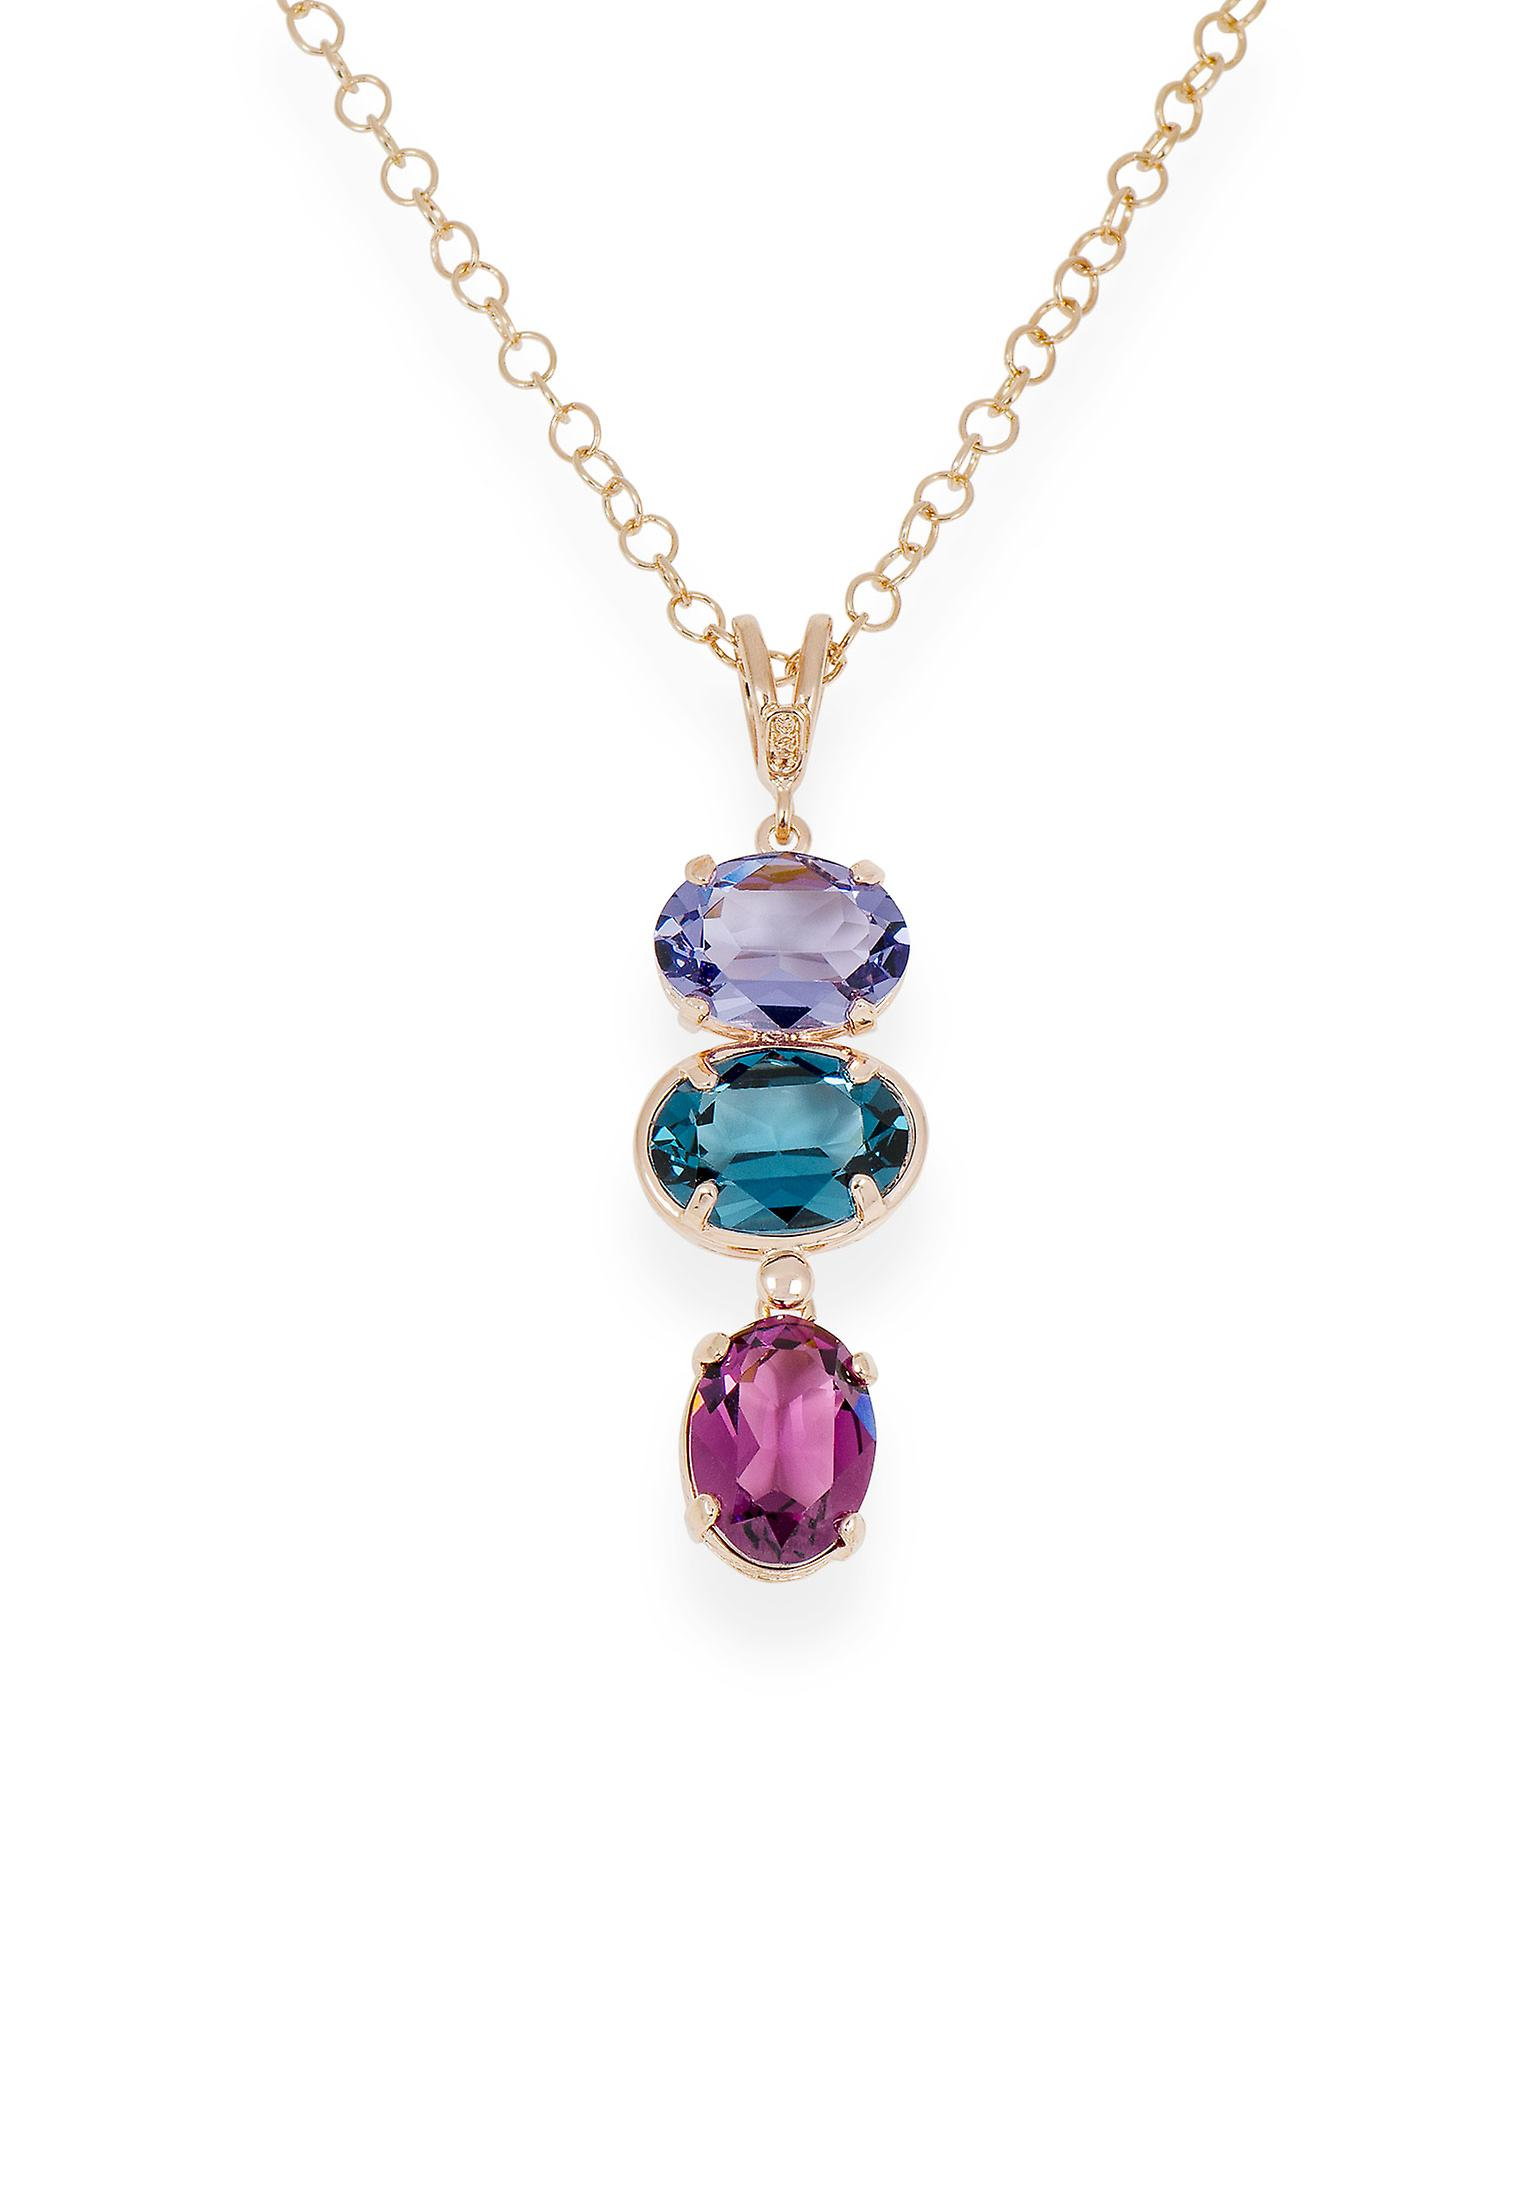 Multicolor pendant with crystals from Swarovski 9250